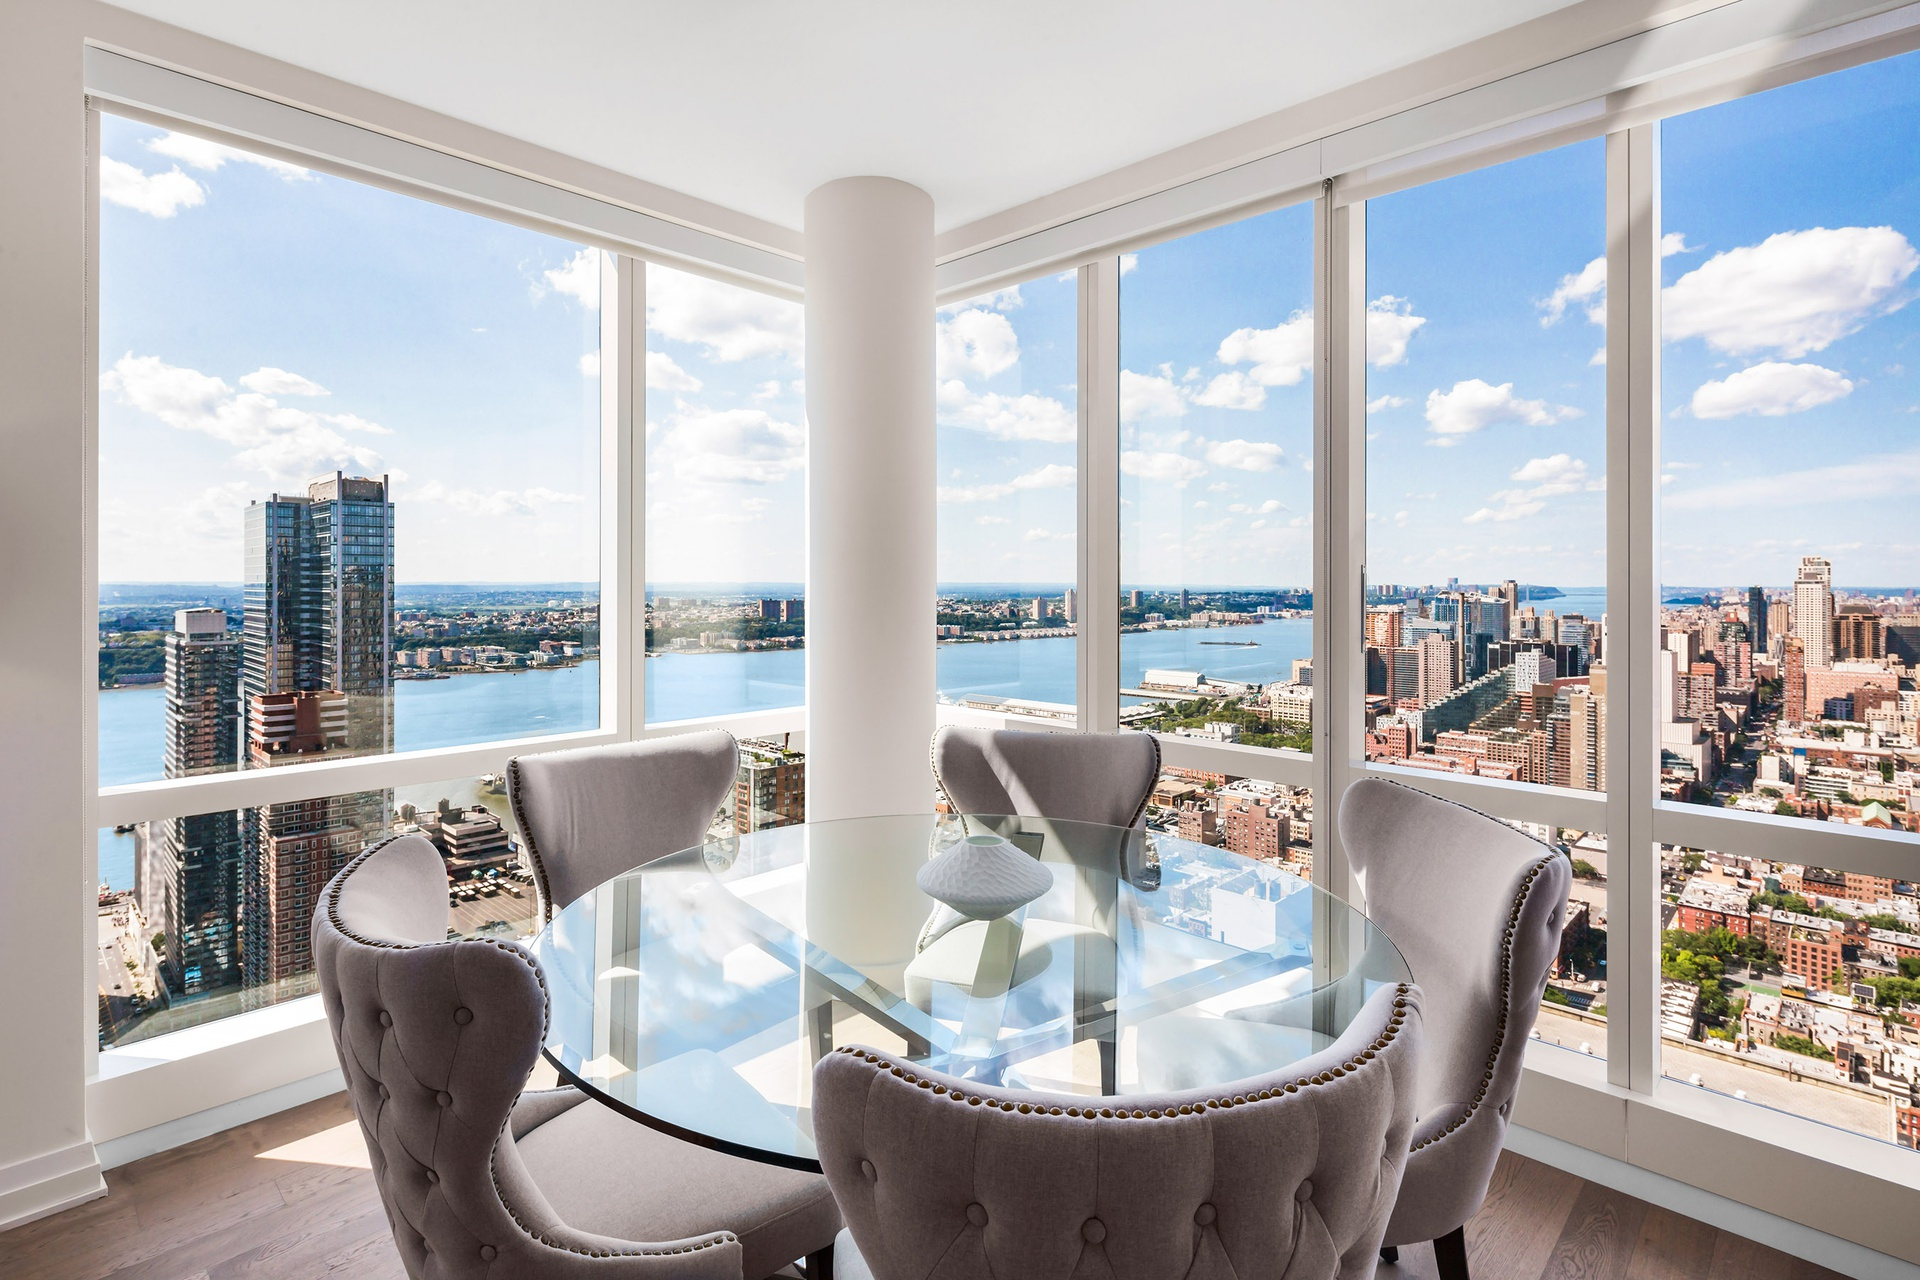 460 West 42nd Street, 58K - $3,570,000 // 2 Bed // 2.5 Bath // 1,266 SQFT With residences starting on the 51st floor, 58K is a stunning Two Bedroom Two and Half Bath residence of 1,266 square feet.